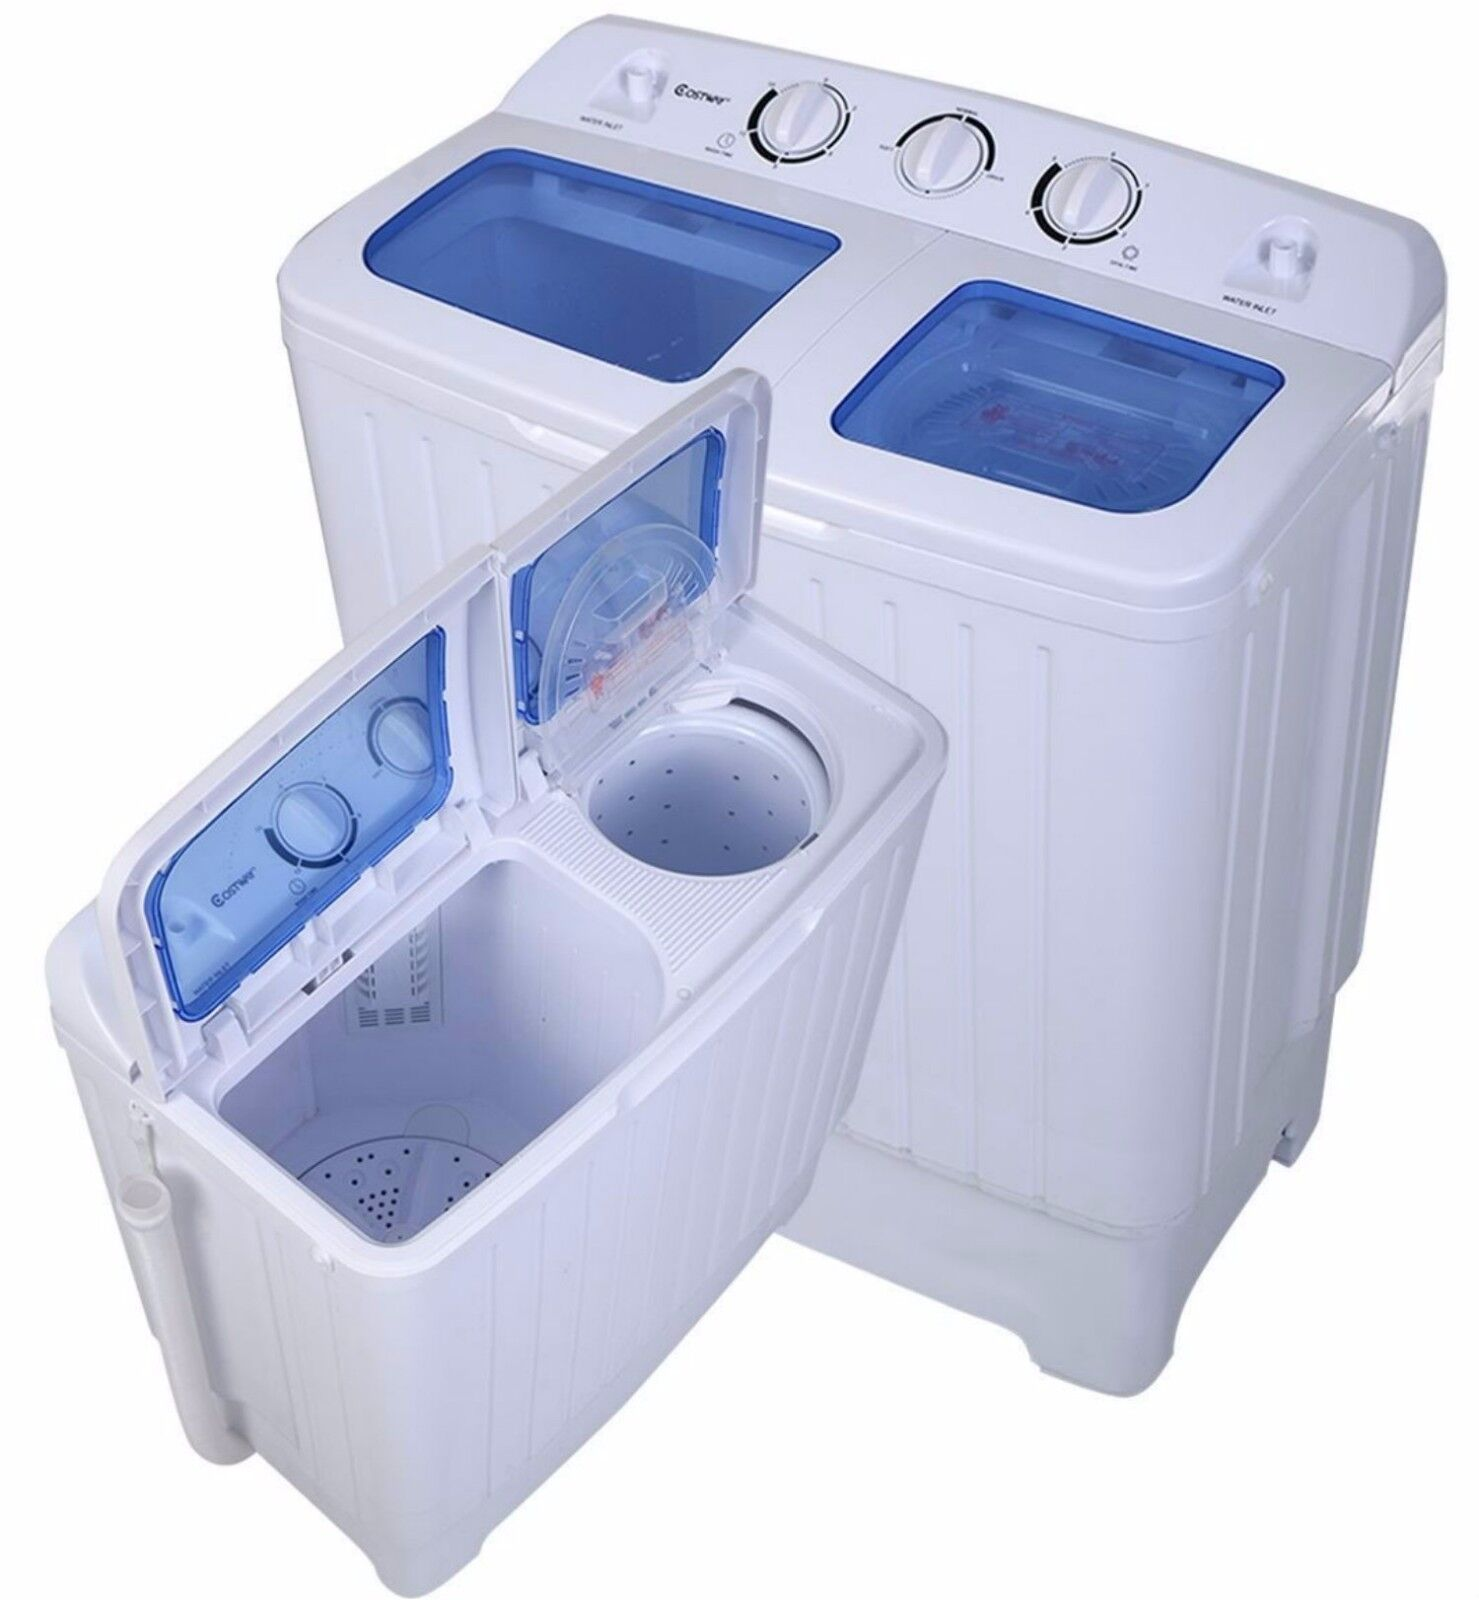 Washer and Dryer Combo Portable Washing Machine 11lbs ...